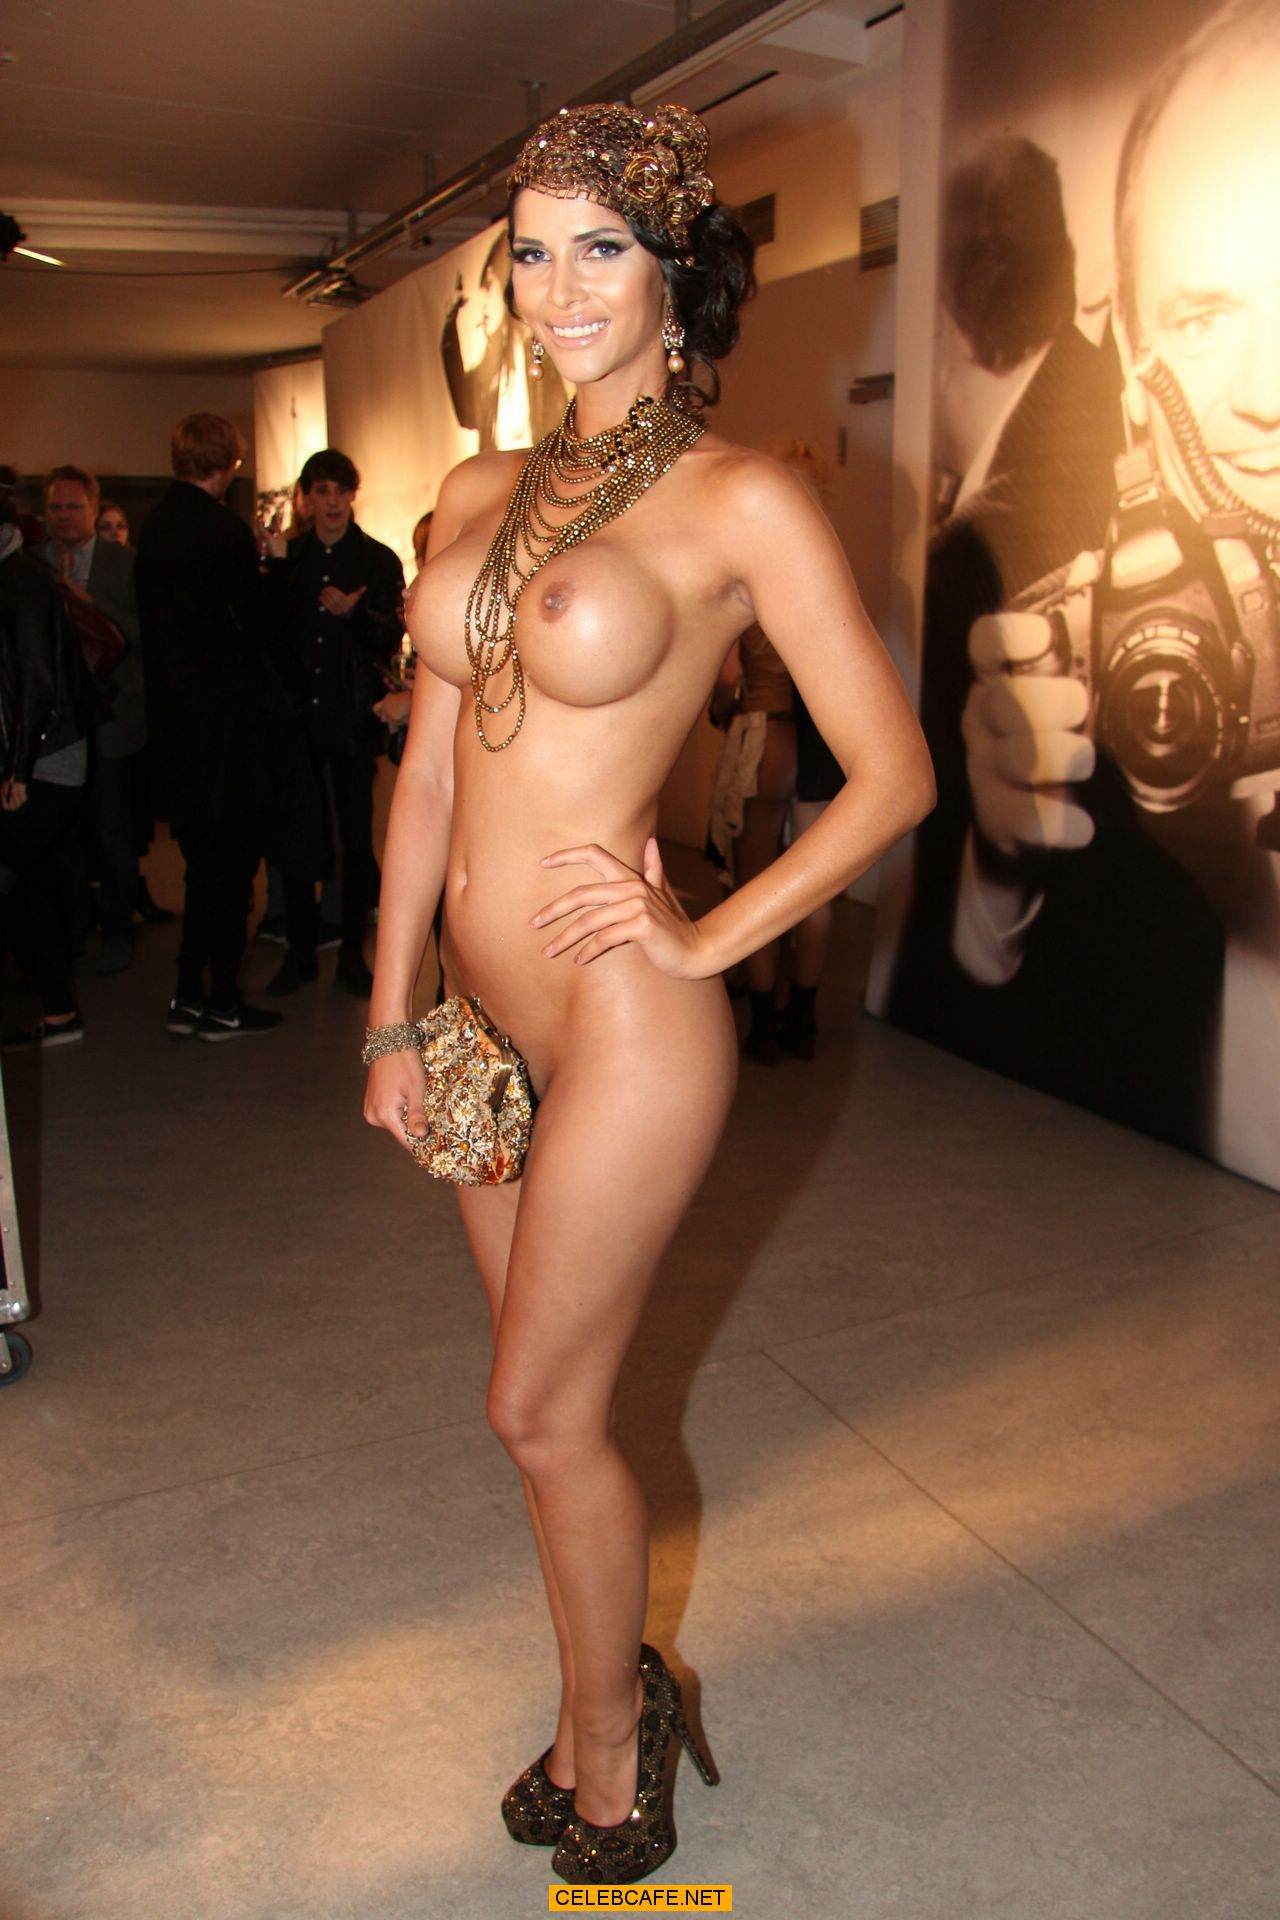 07 jan 2015 micaela schaefer posing fully nude at photo exhibition in